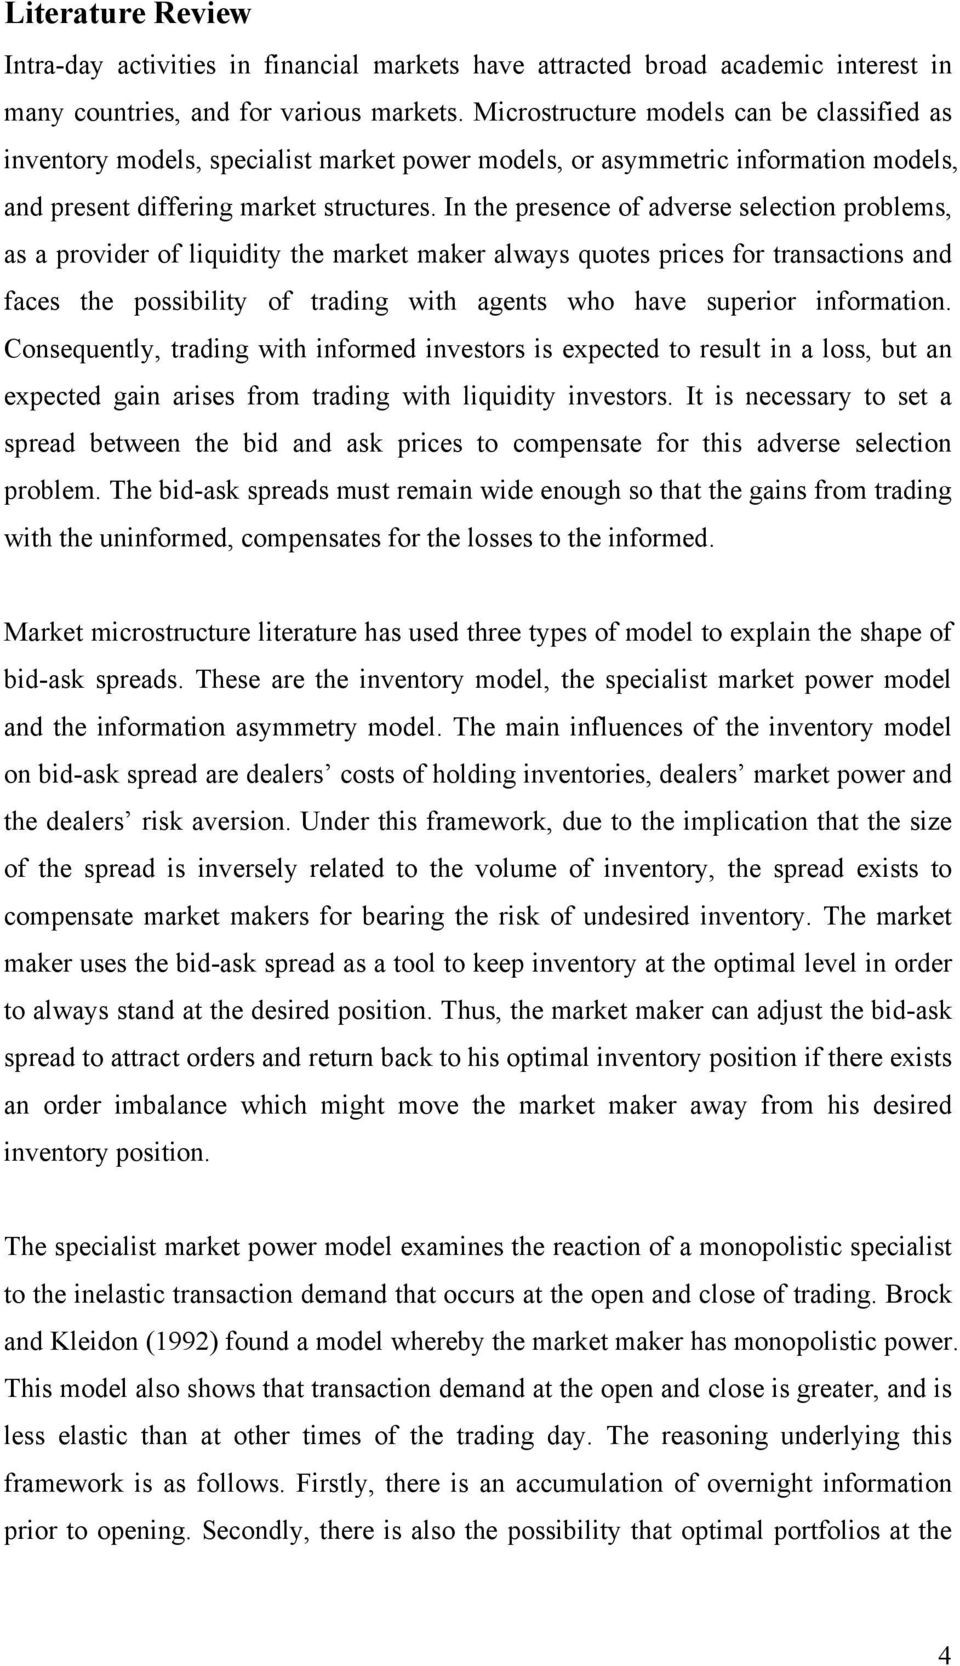 In the presence of adverse selection problems, as a provider of liquidity the market maker always quotes prices for transactions and faces the possibility of trading with agents who have superior